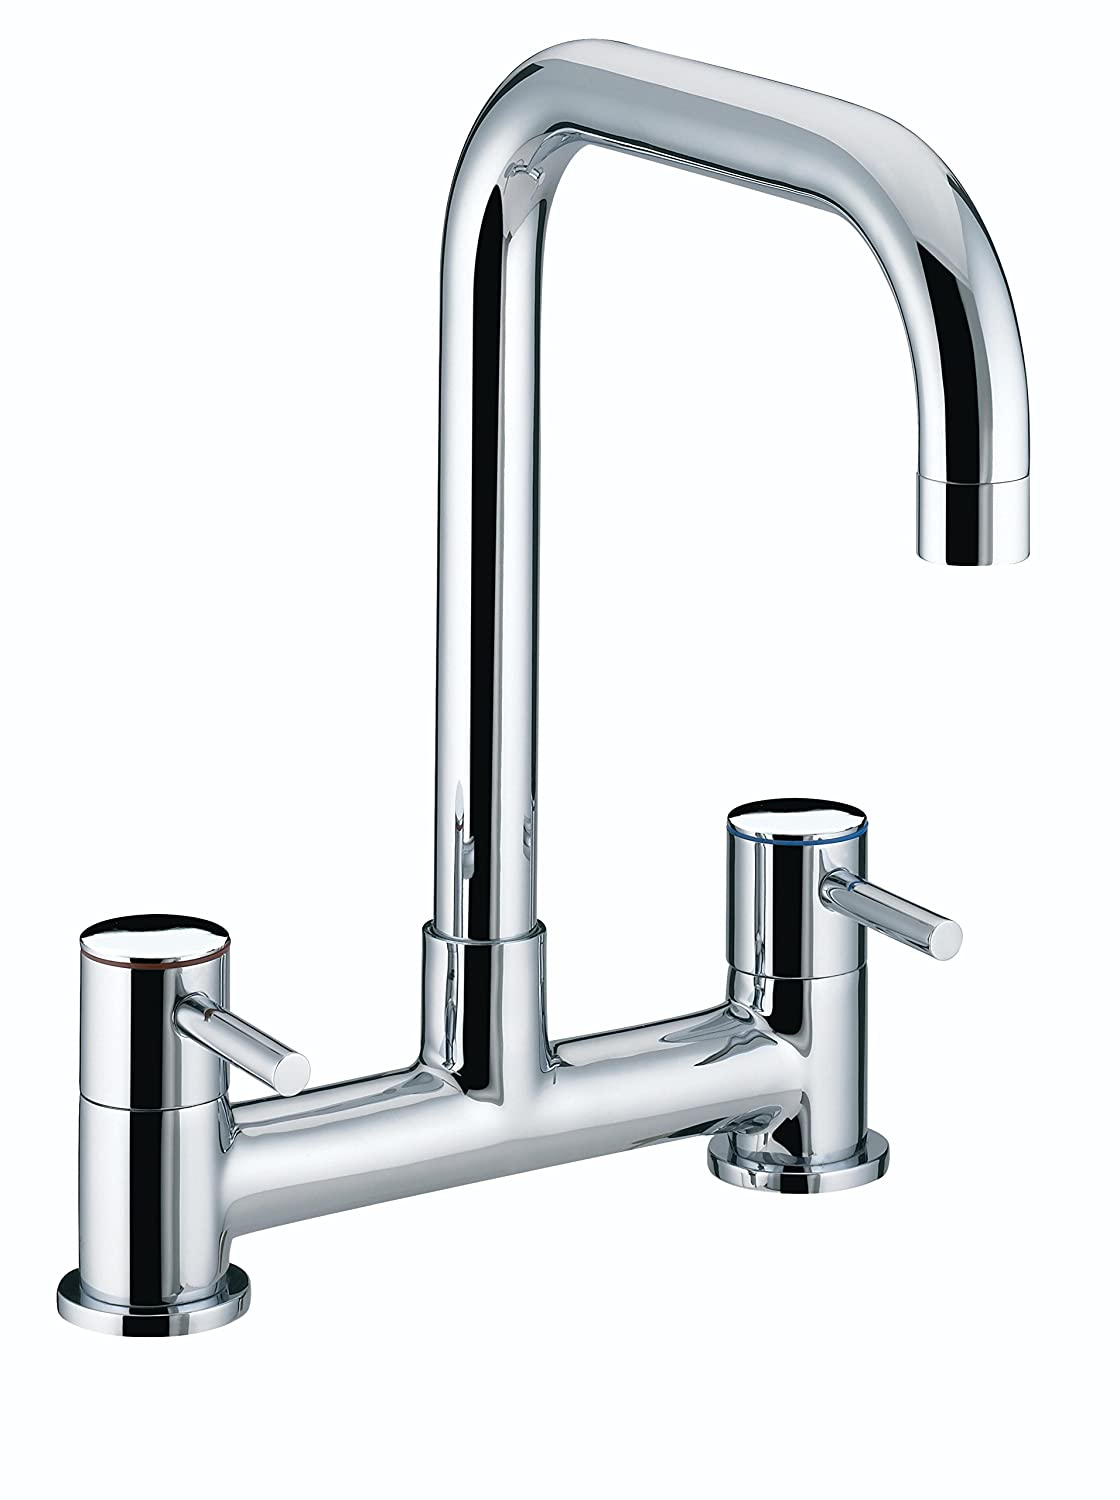 Bristan To DSM C Torre Deck Plated Sink Mixer - Chrome: Amazon.co ...